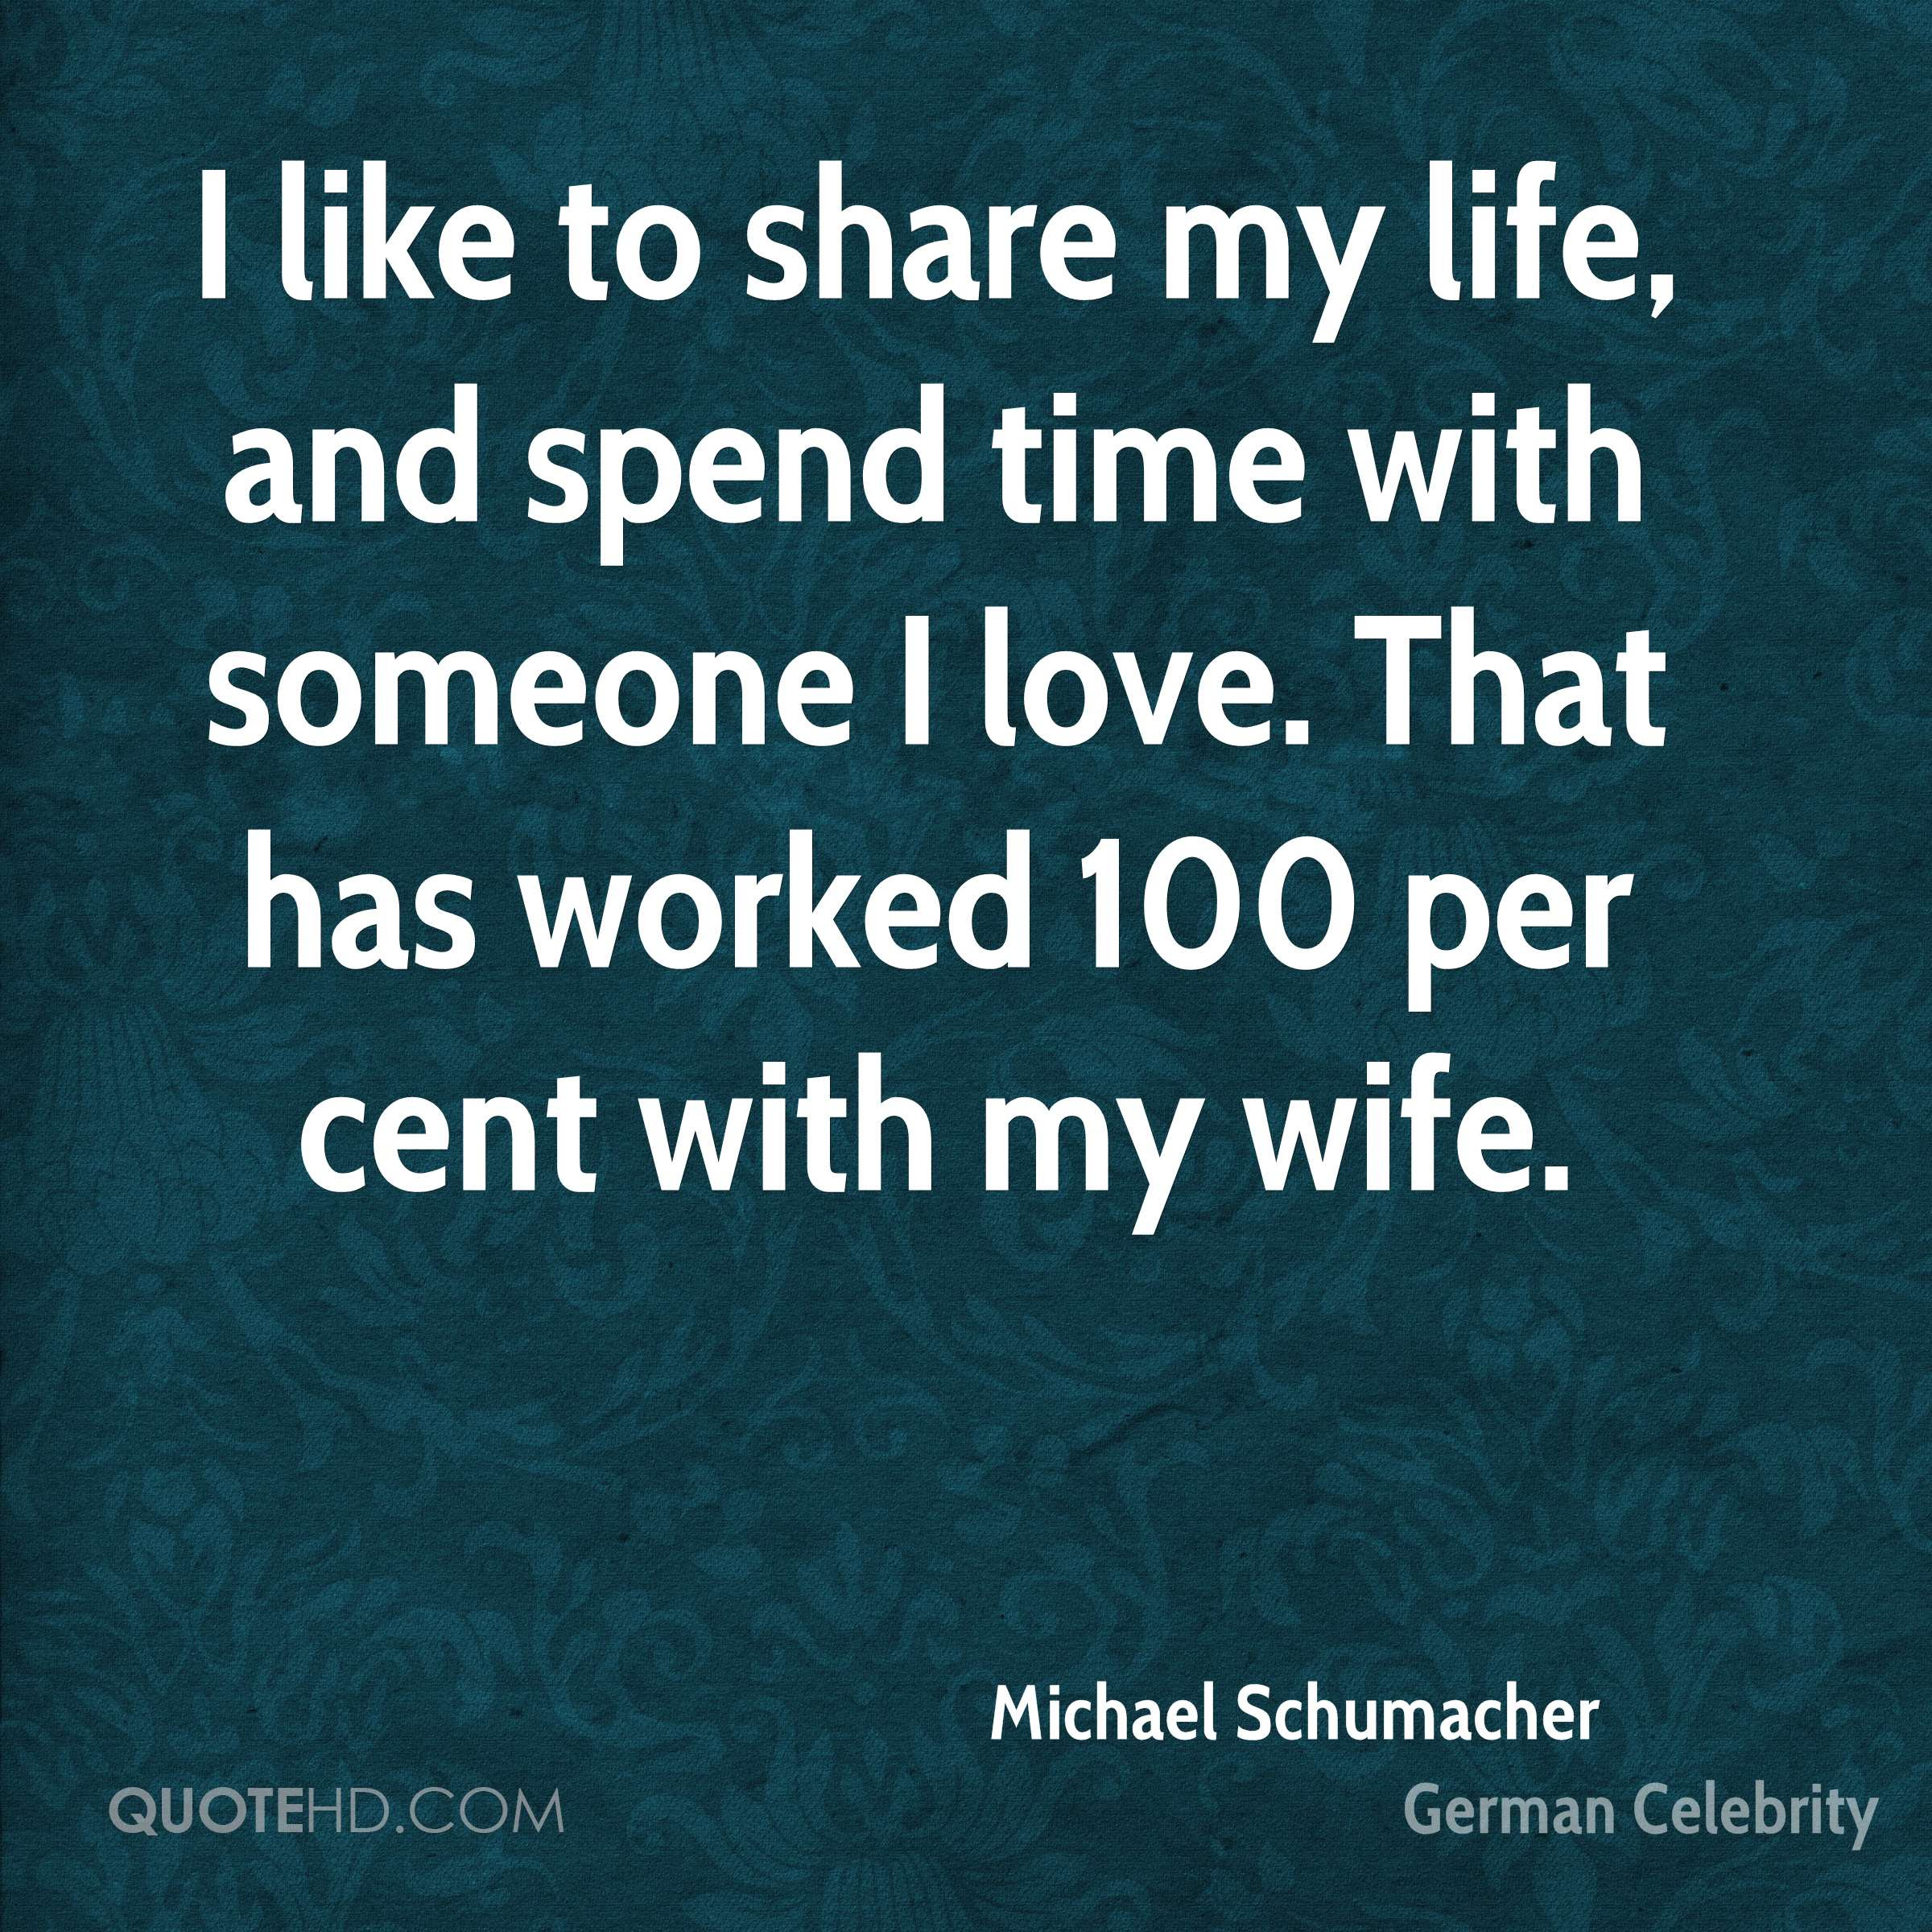 Michael Schumacher Wife Quotes Quotehd